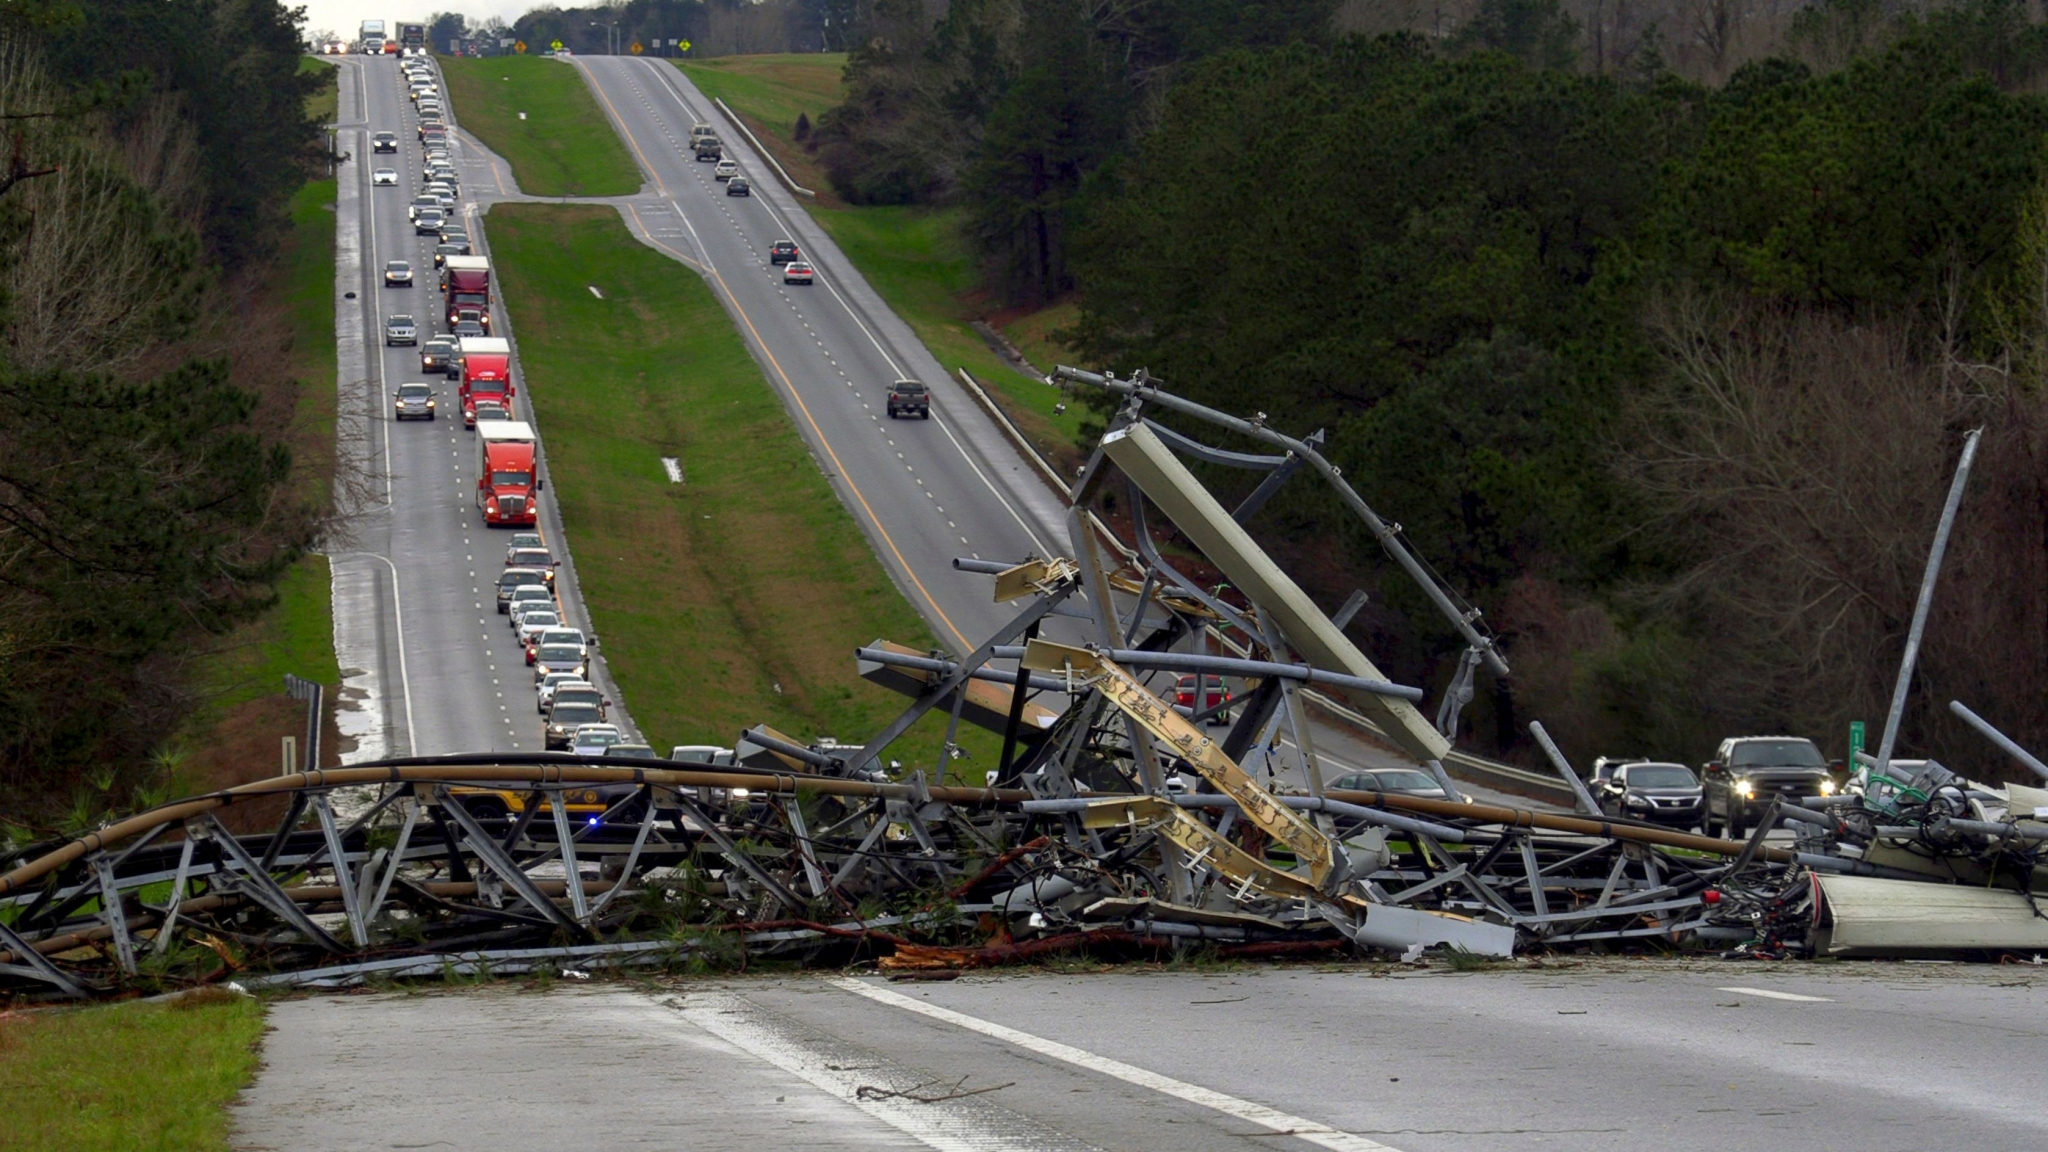 14 Dead, Many Injured After Tornado Hits Alabama, US